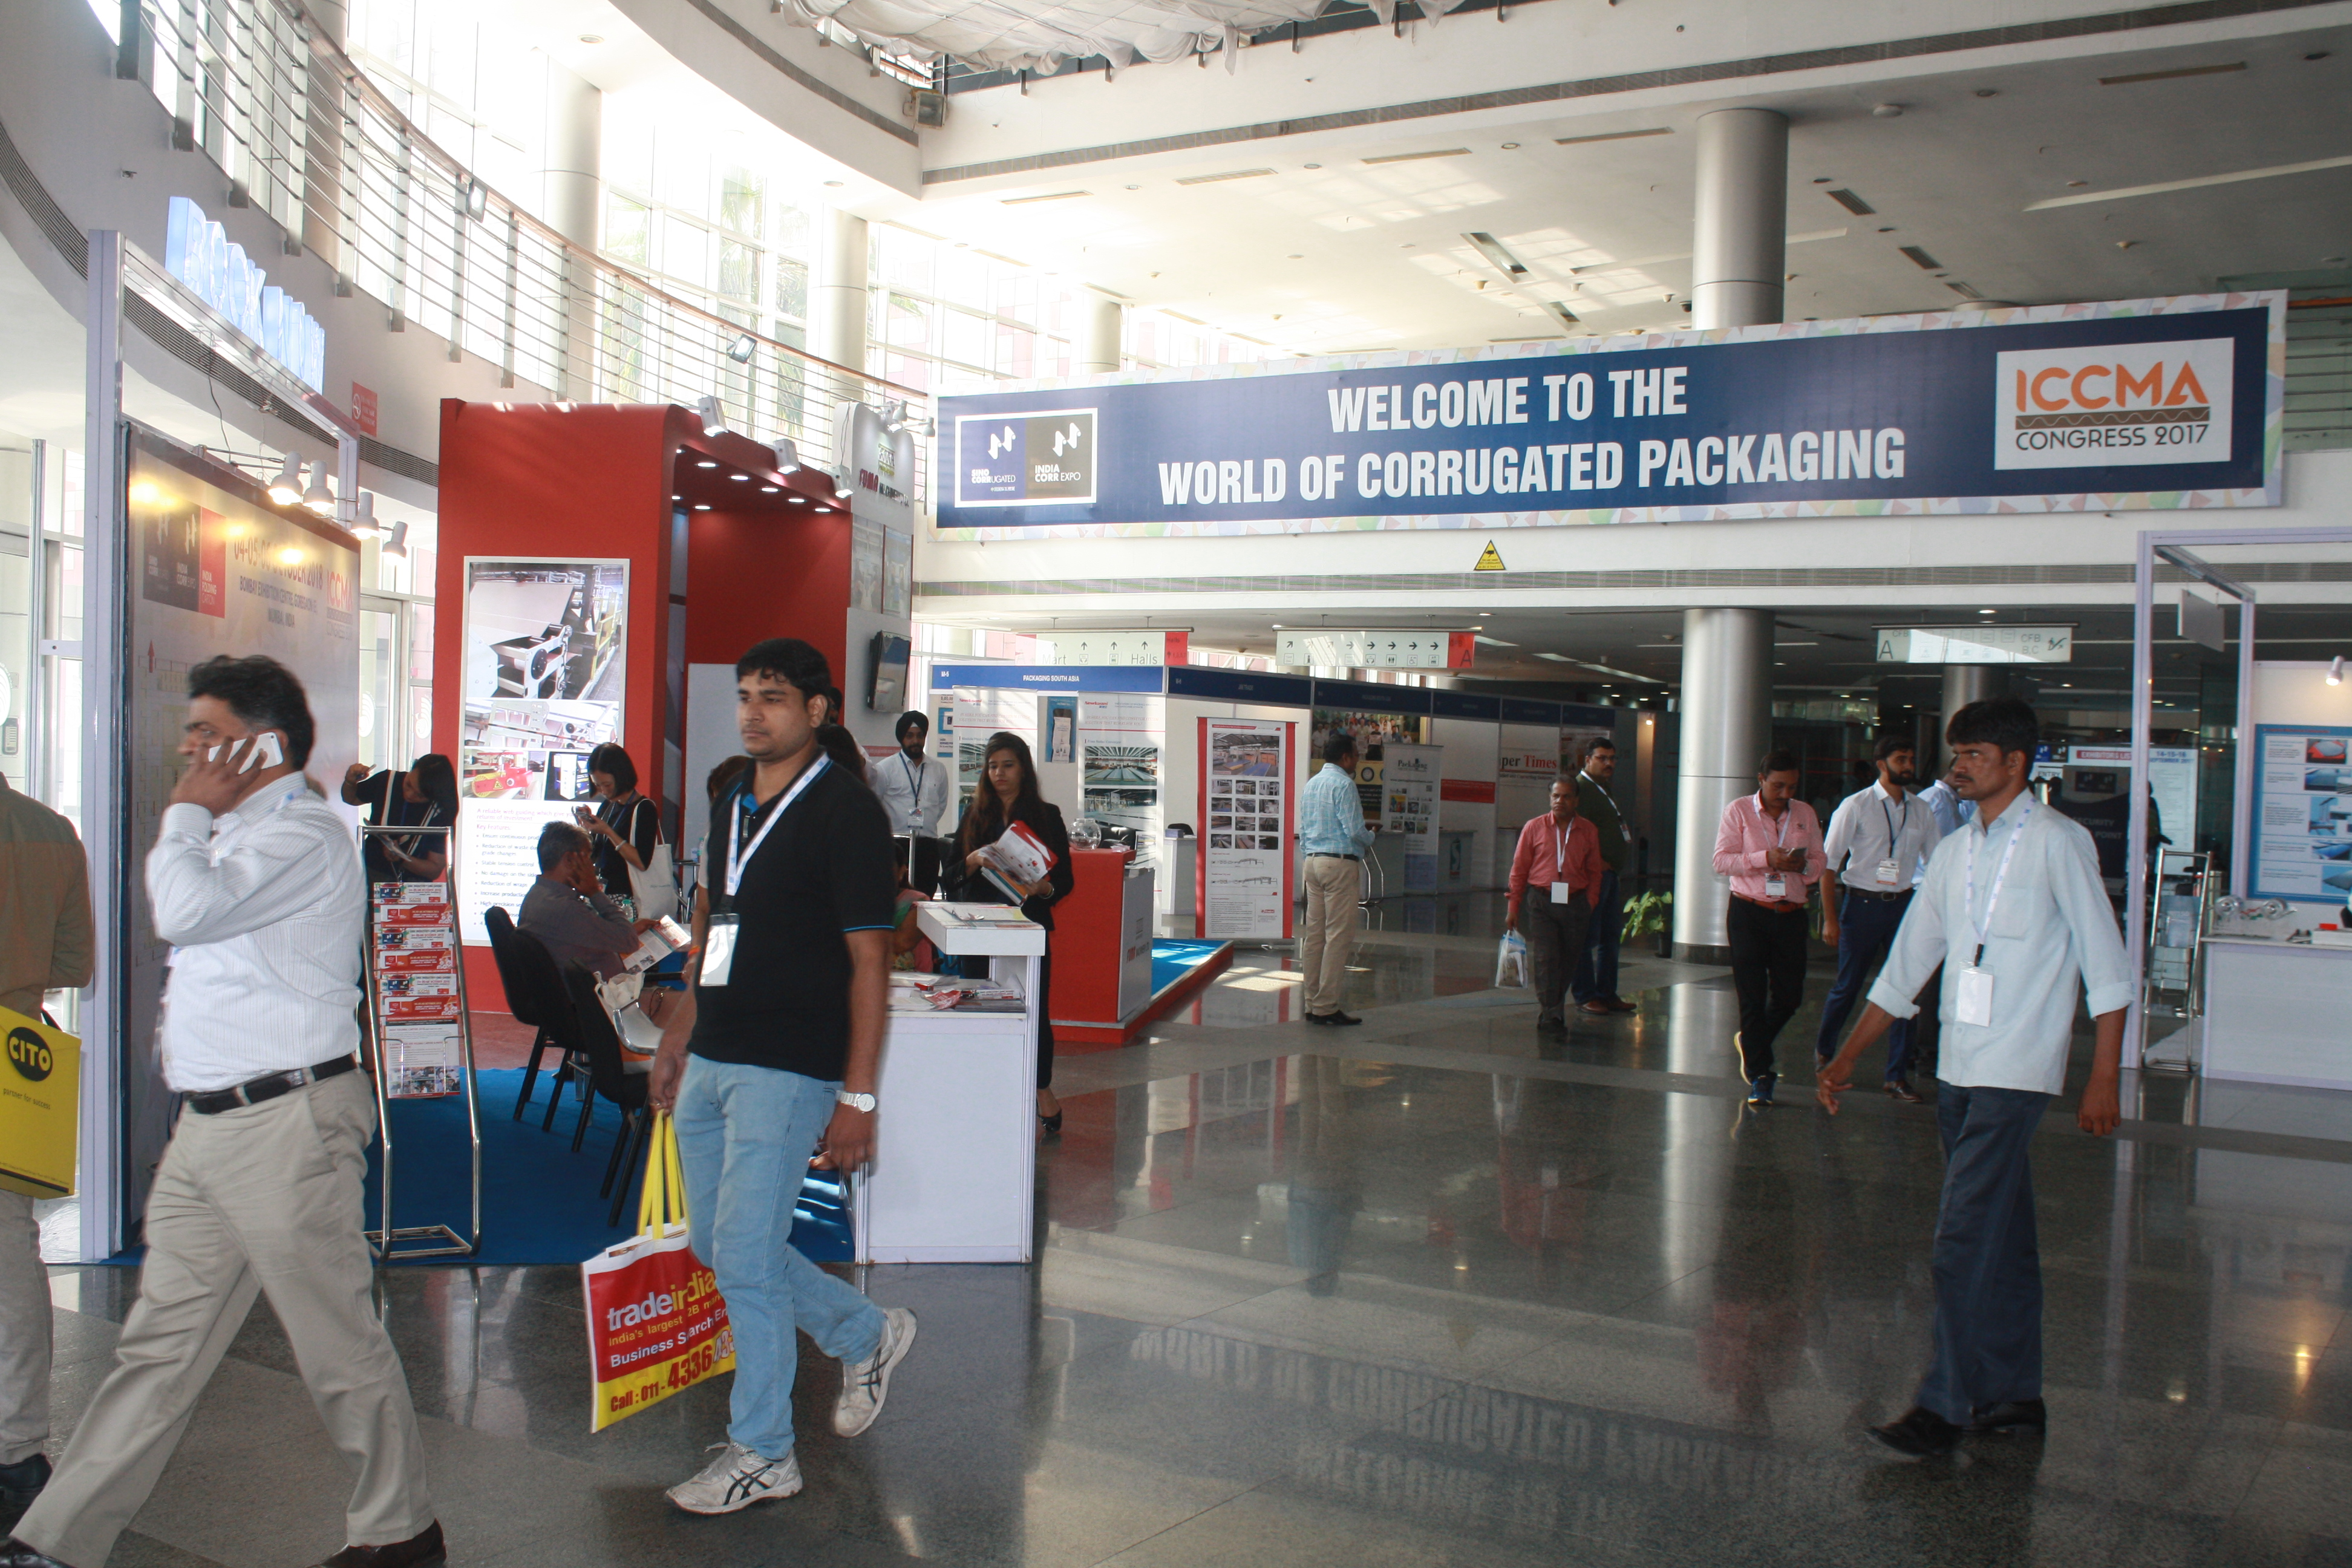 More than 250 exhibitors participated in the exhibition